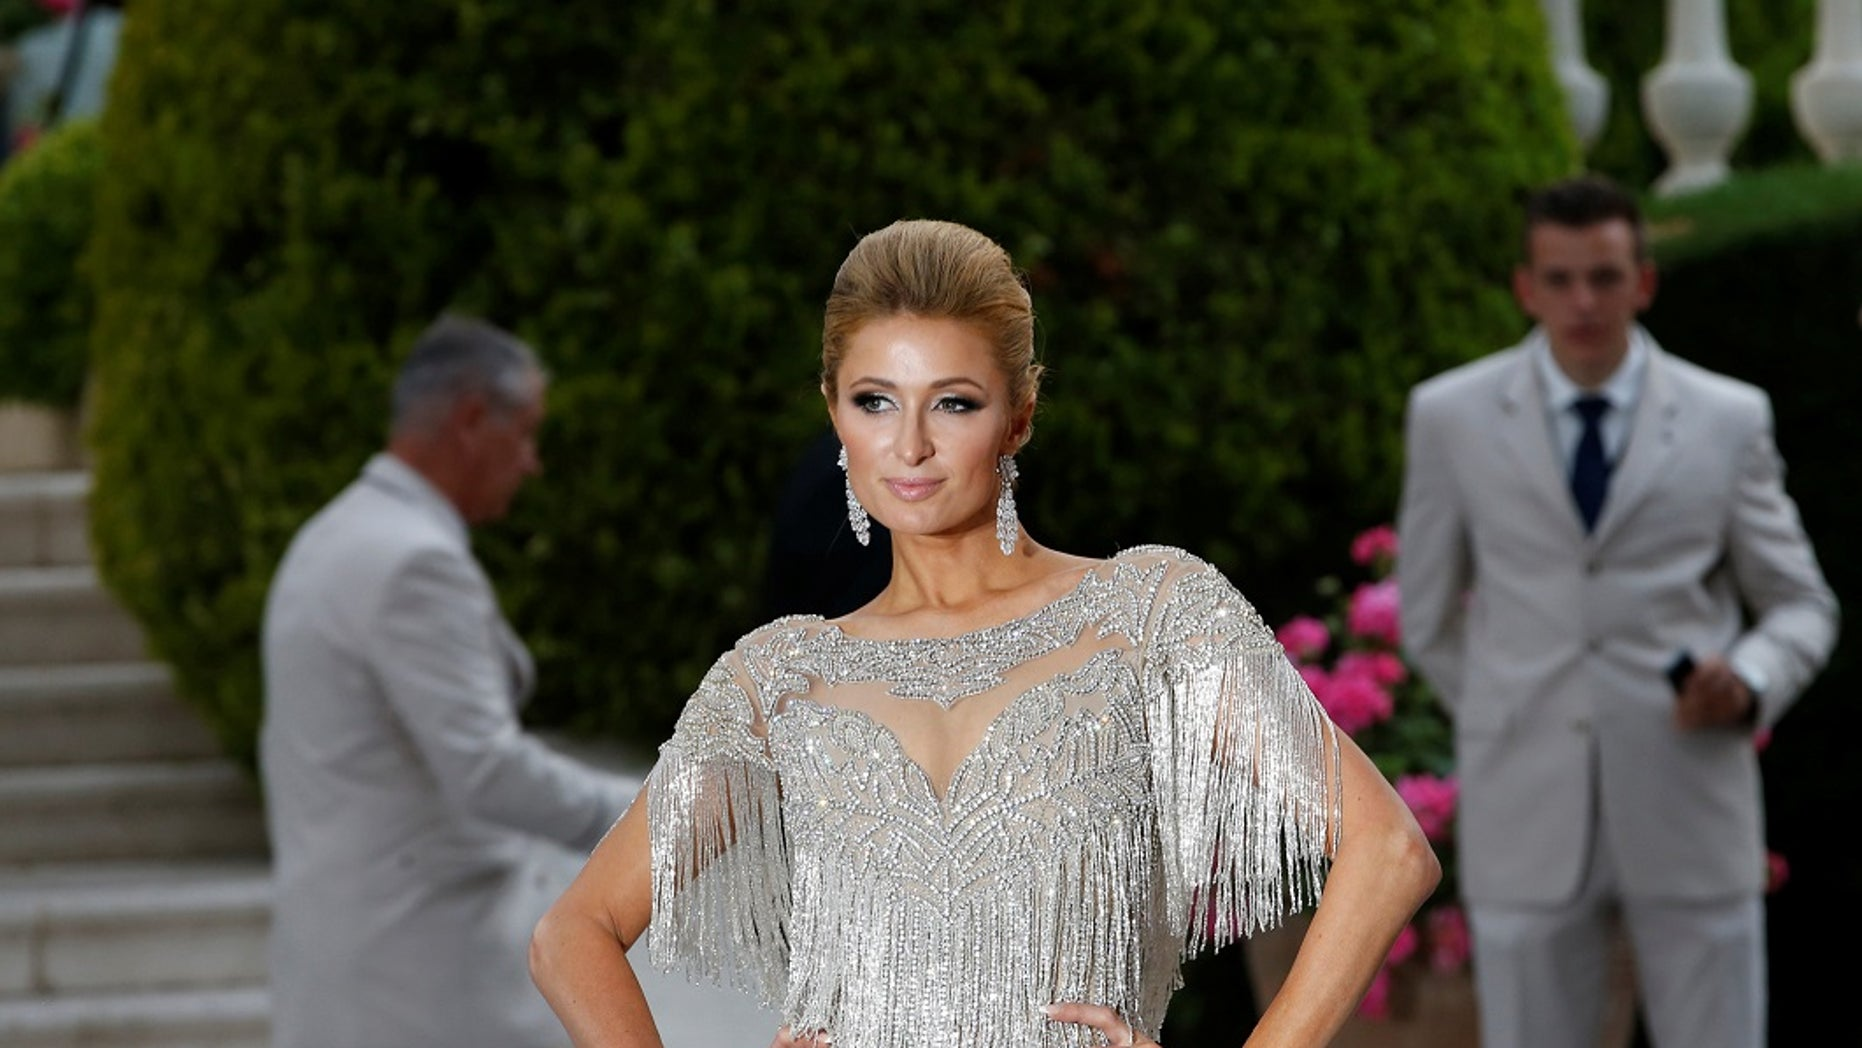 Paris Hilton said in an interview with Marie Claire that her chances of being like Princess Diana was ruined following the release of her sex tape with ex-boyfriend Rick Salomon.